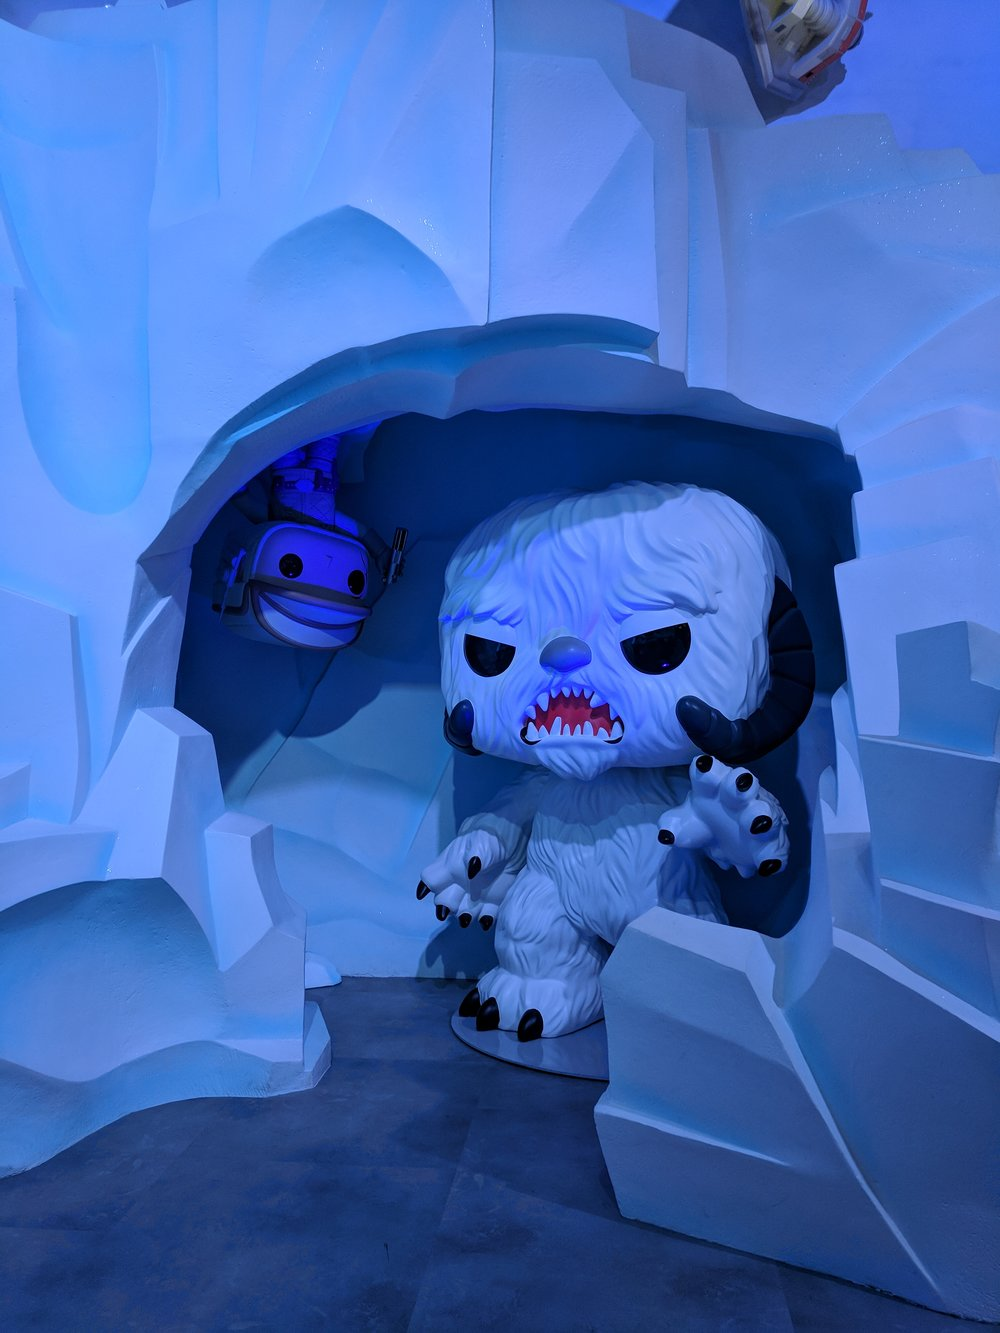 The Pop treatment doesn't make everything cute and cuddly. That wampa still looks horrifying